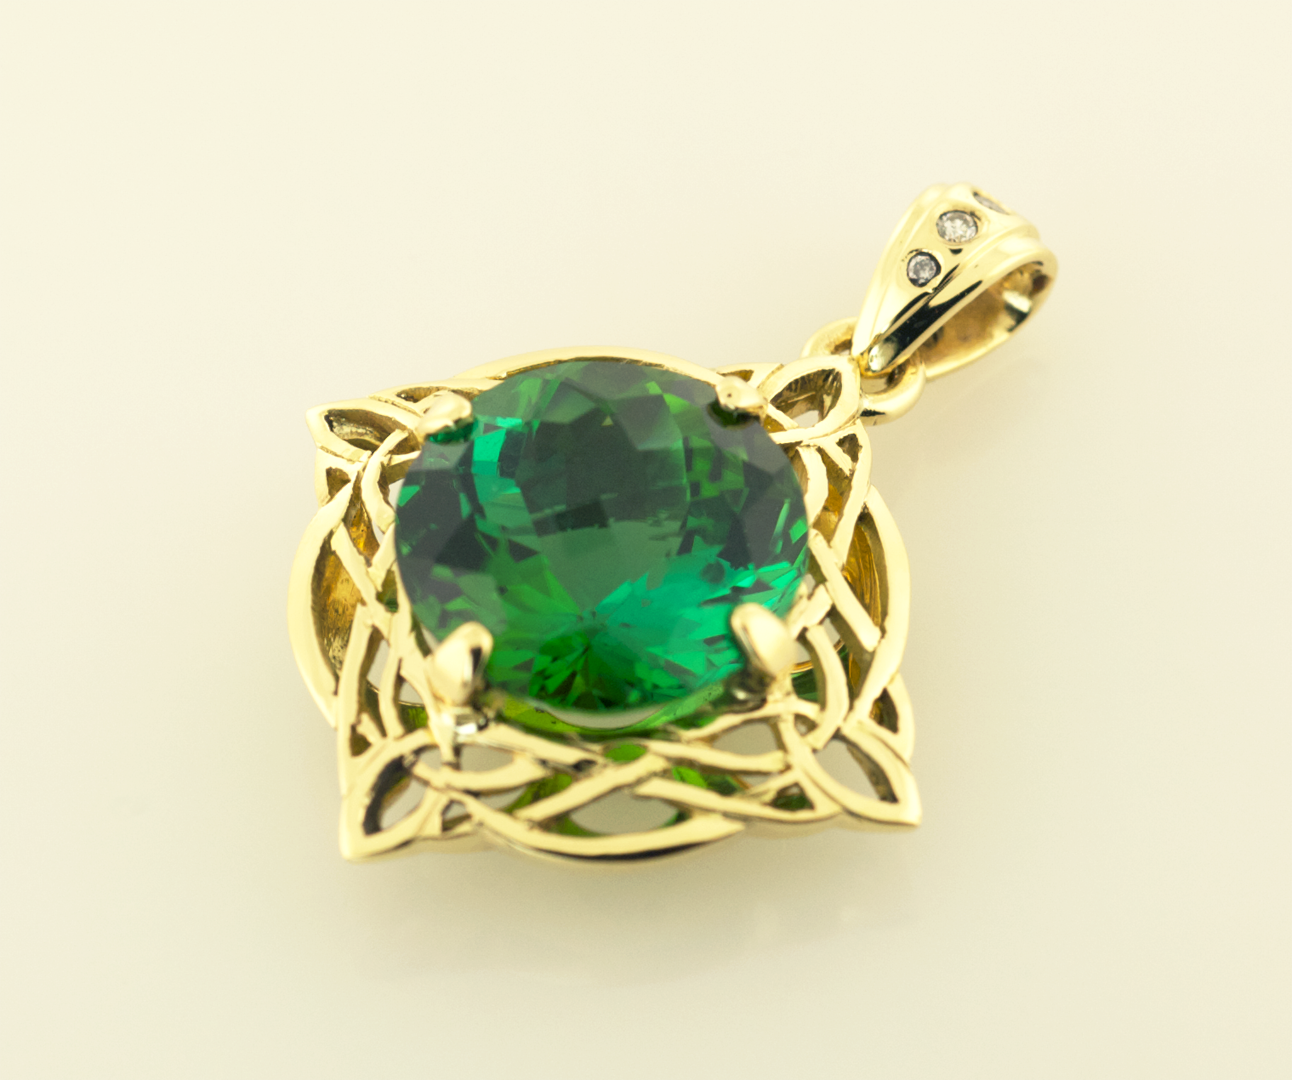 Green Tourmaline, 5.82cts. set in 18KT yellow Gold Celtic Motif Pendant